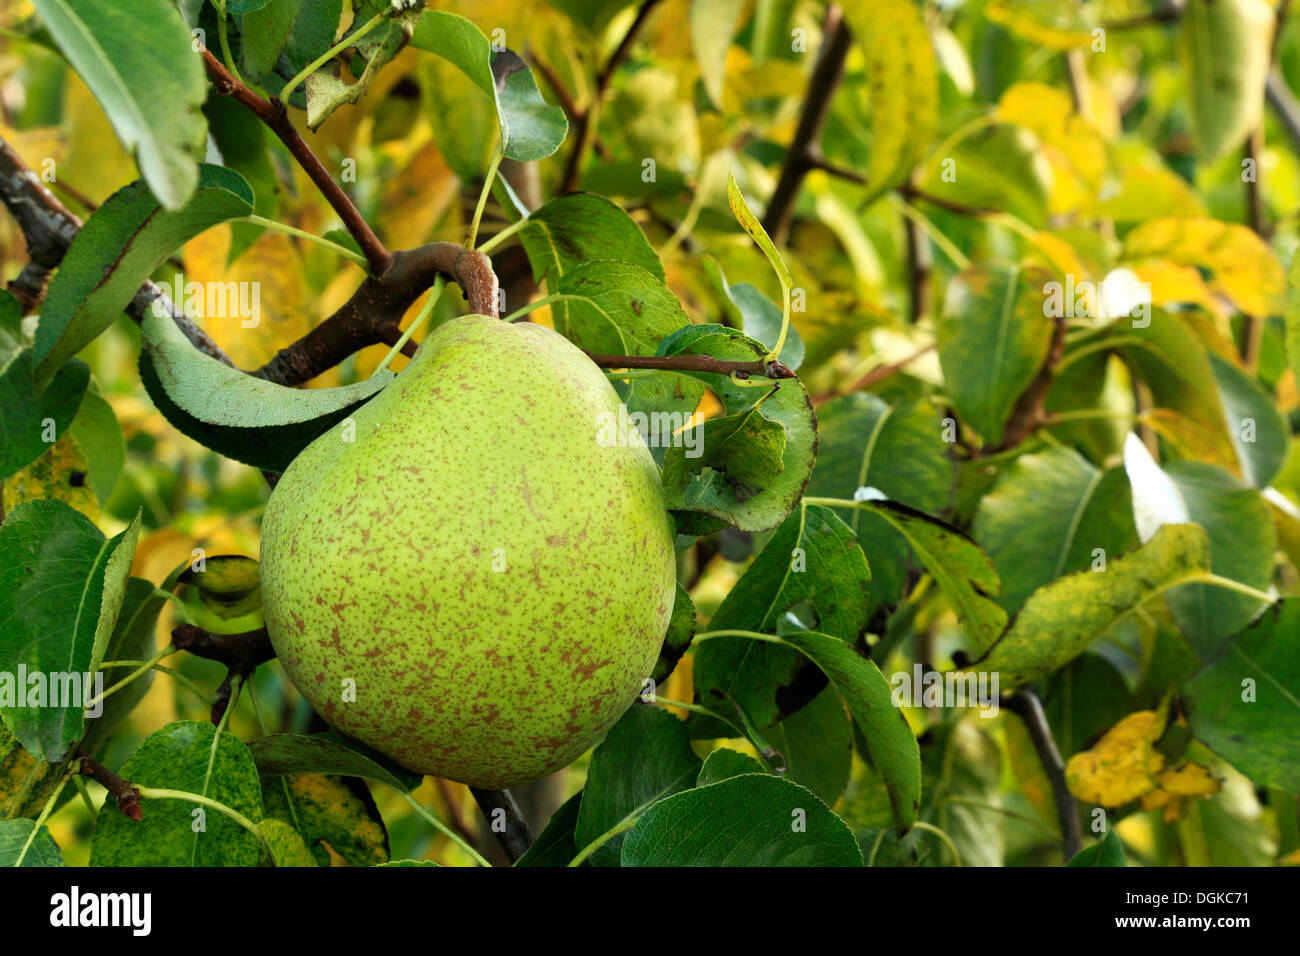 Pear 'Doyenne du Comice', Pyrus communis, named variety growing on tree, pears - Stock Image